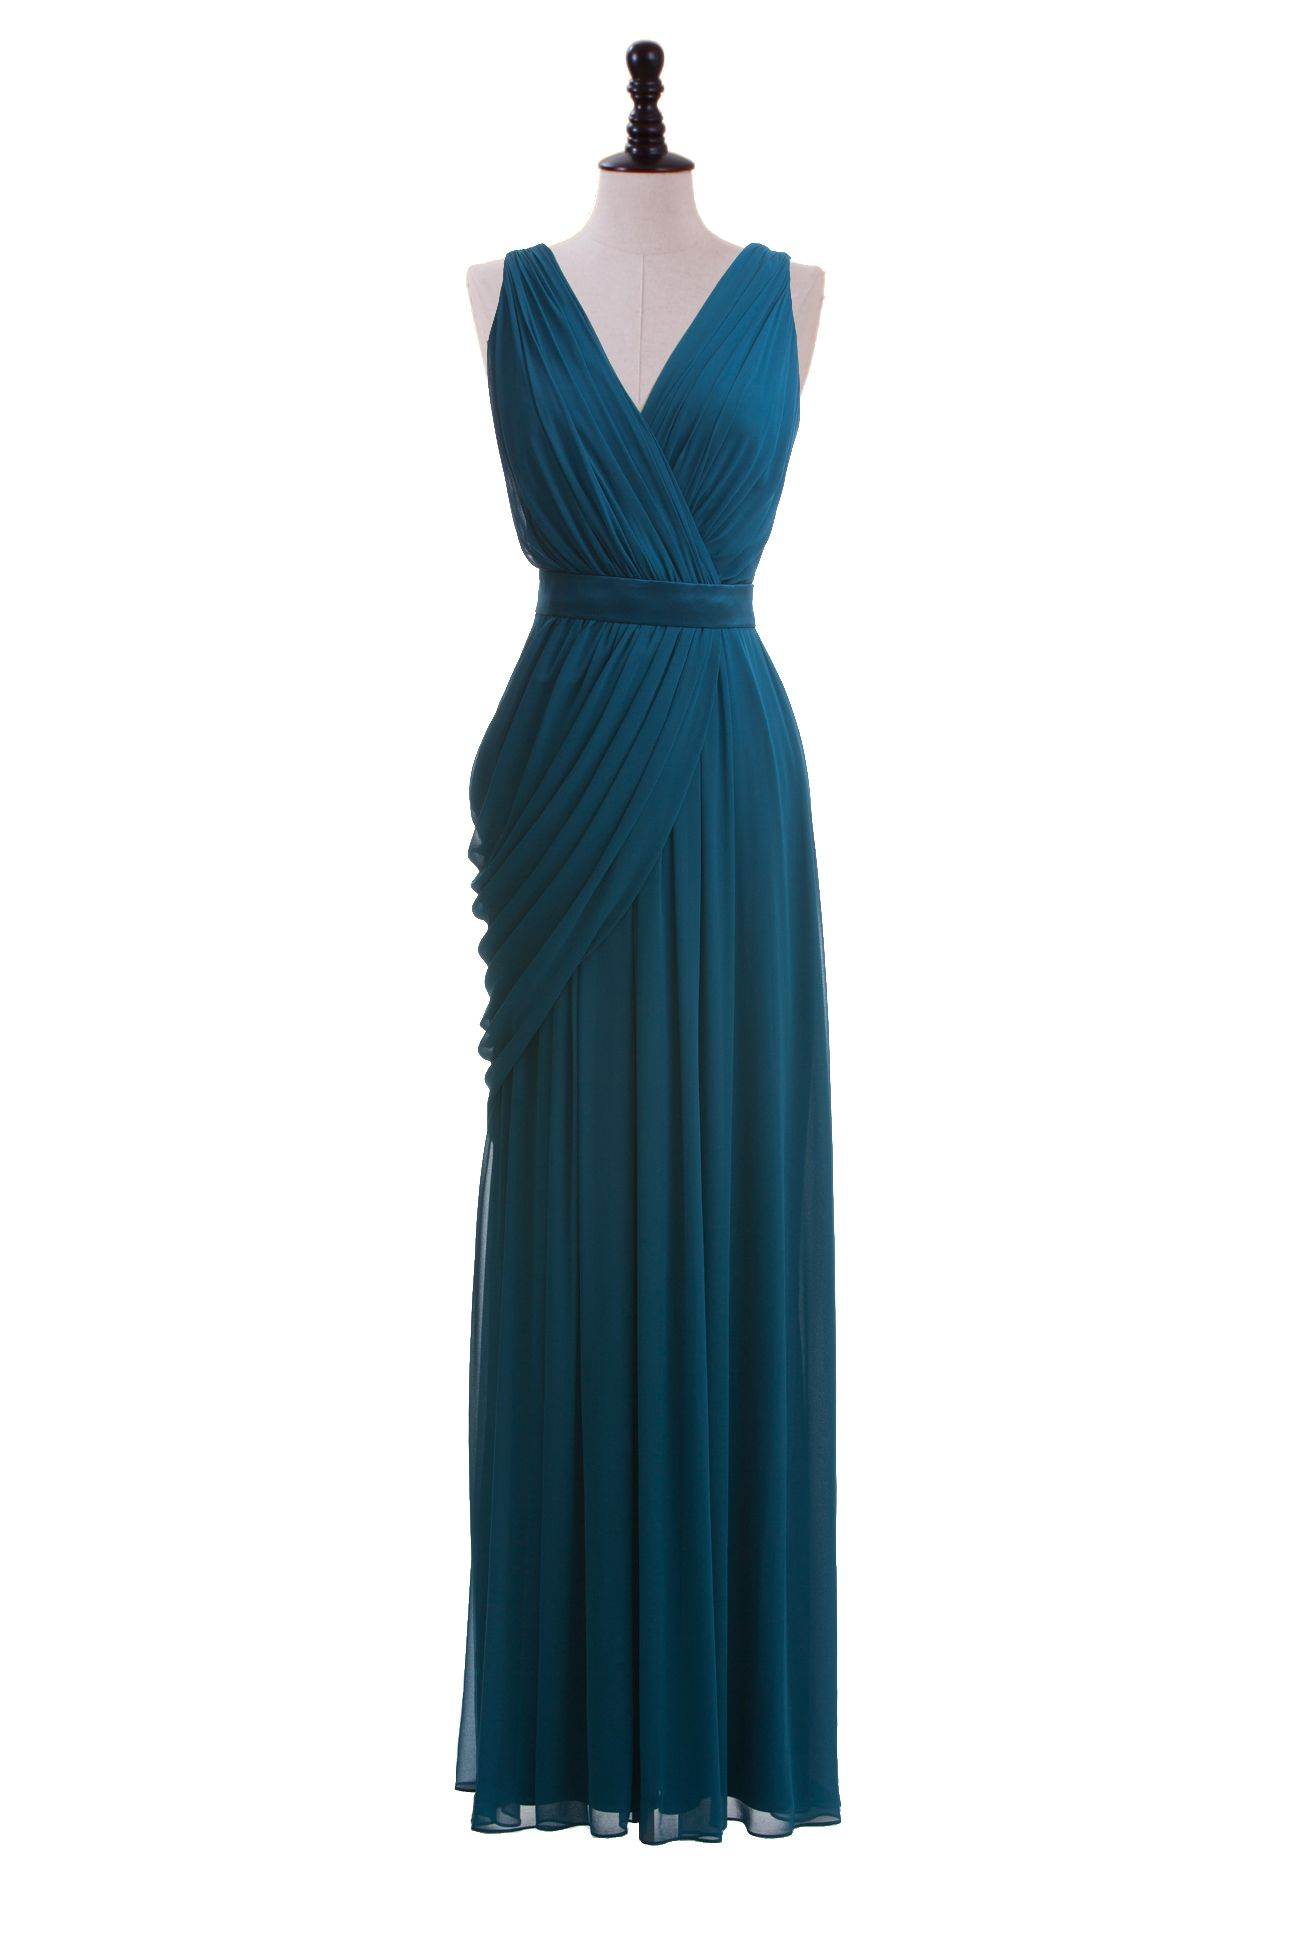 Love it gowns pinterest chiffon gown gowns and fall wedding